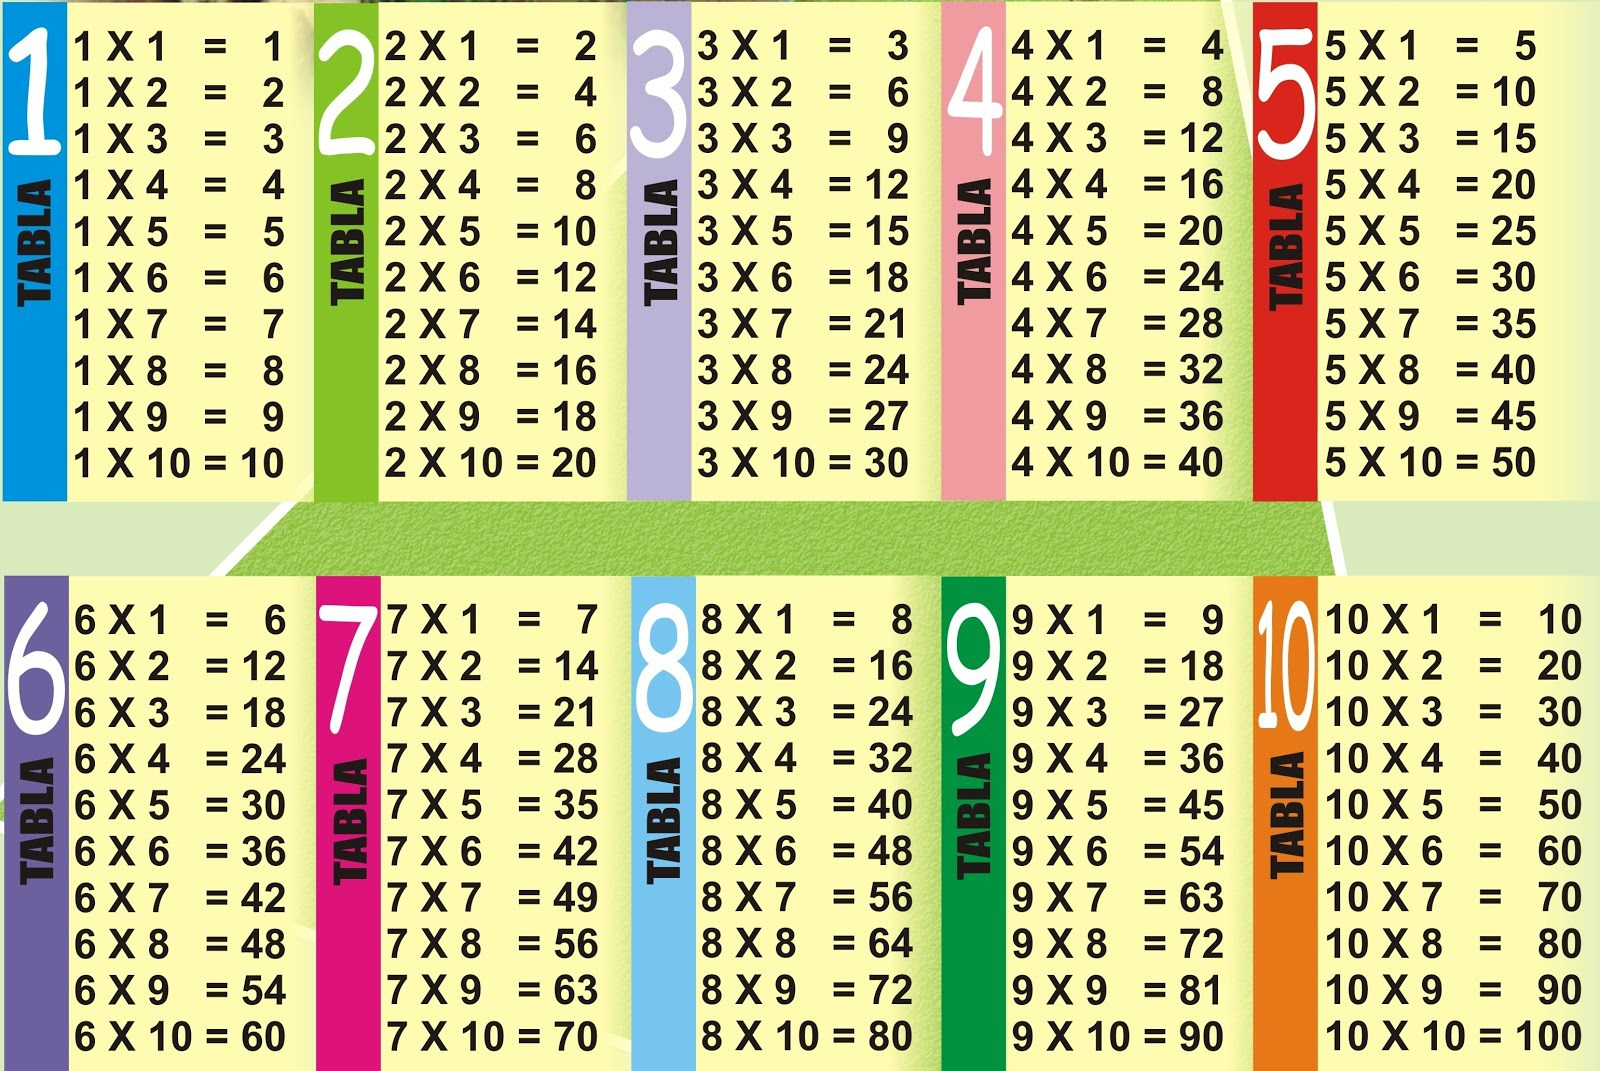 Multiplication Table 1 10 Printable 8 Funnycrafts